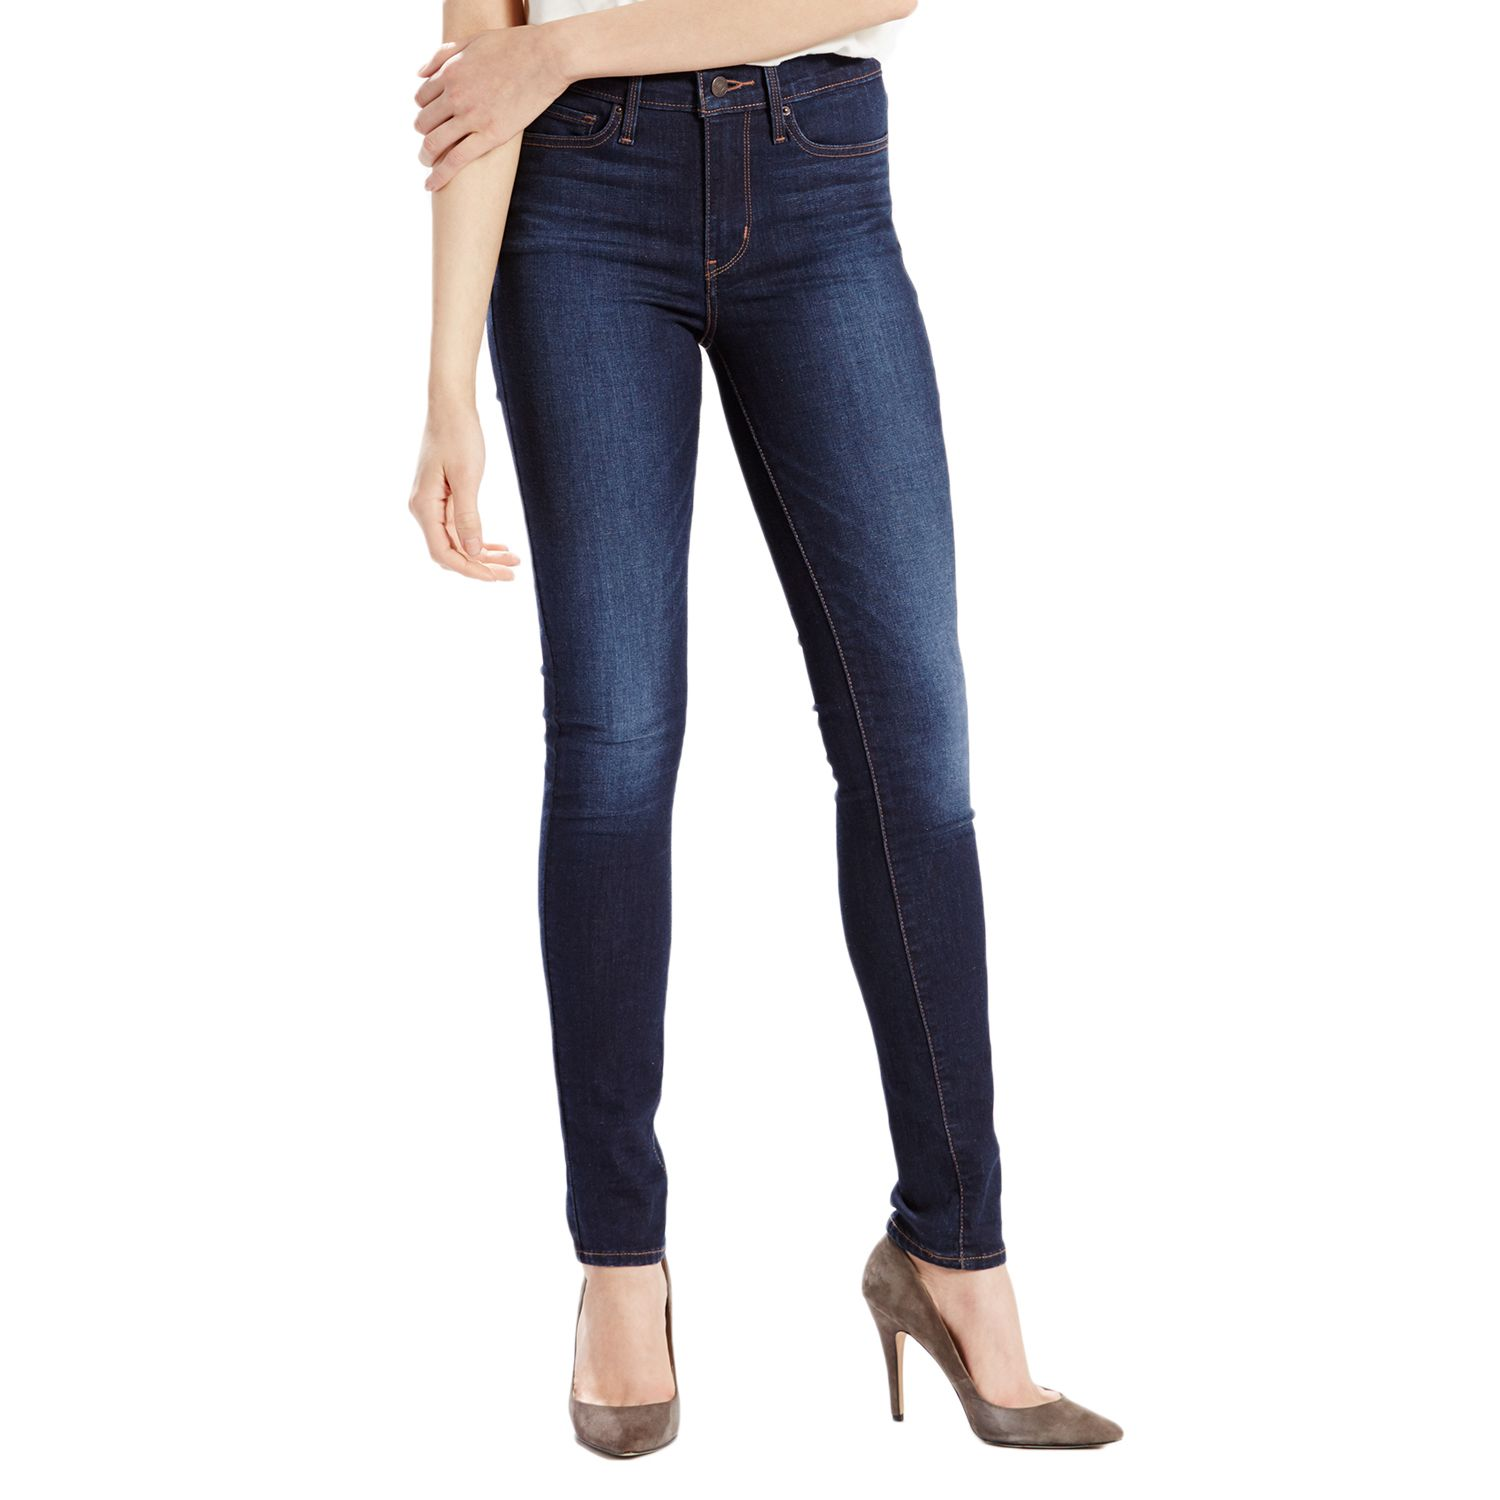 Mint skinny jeans kohl's pictures